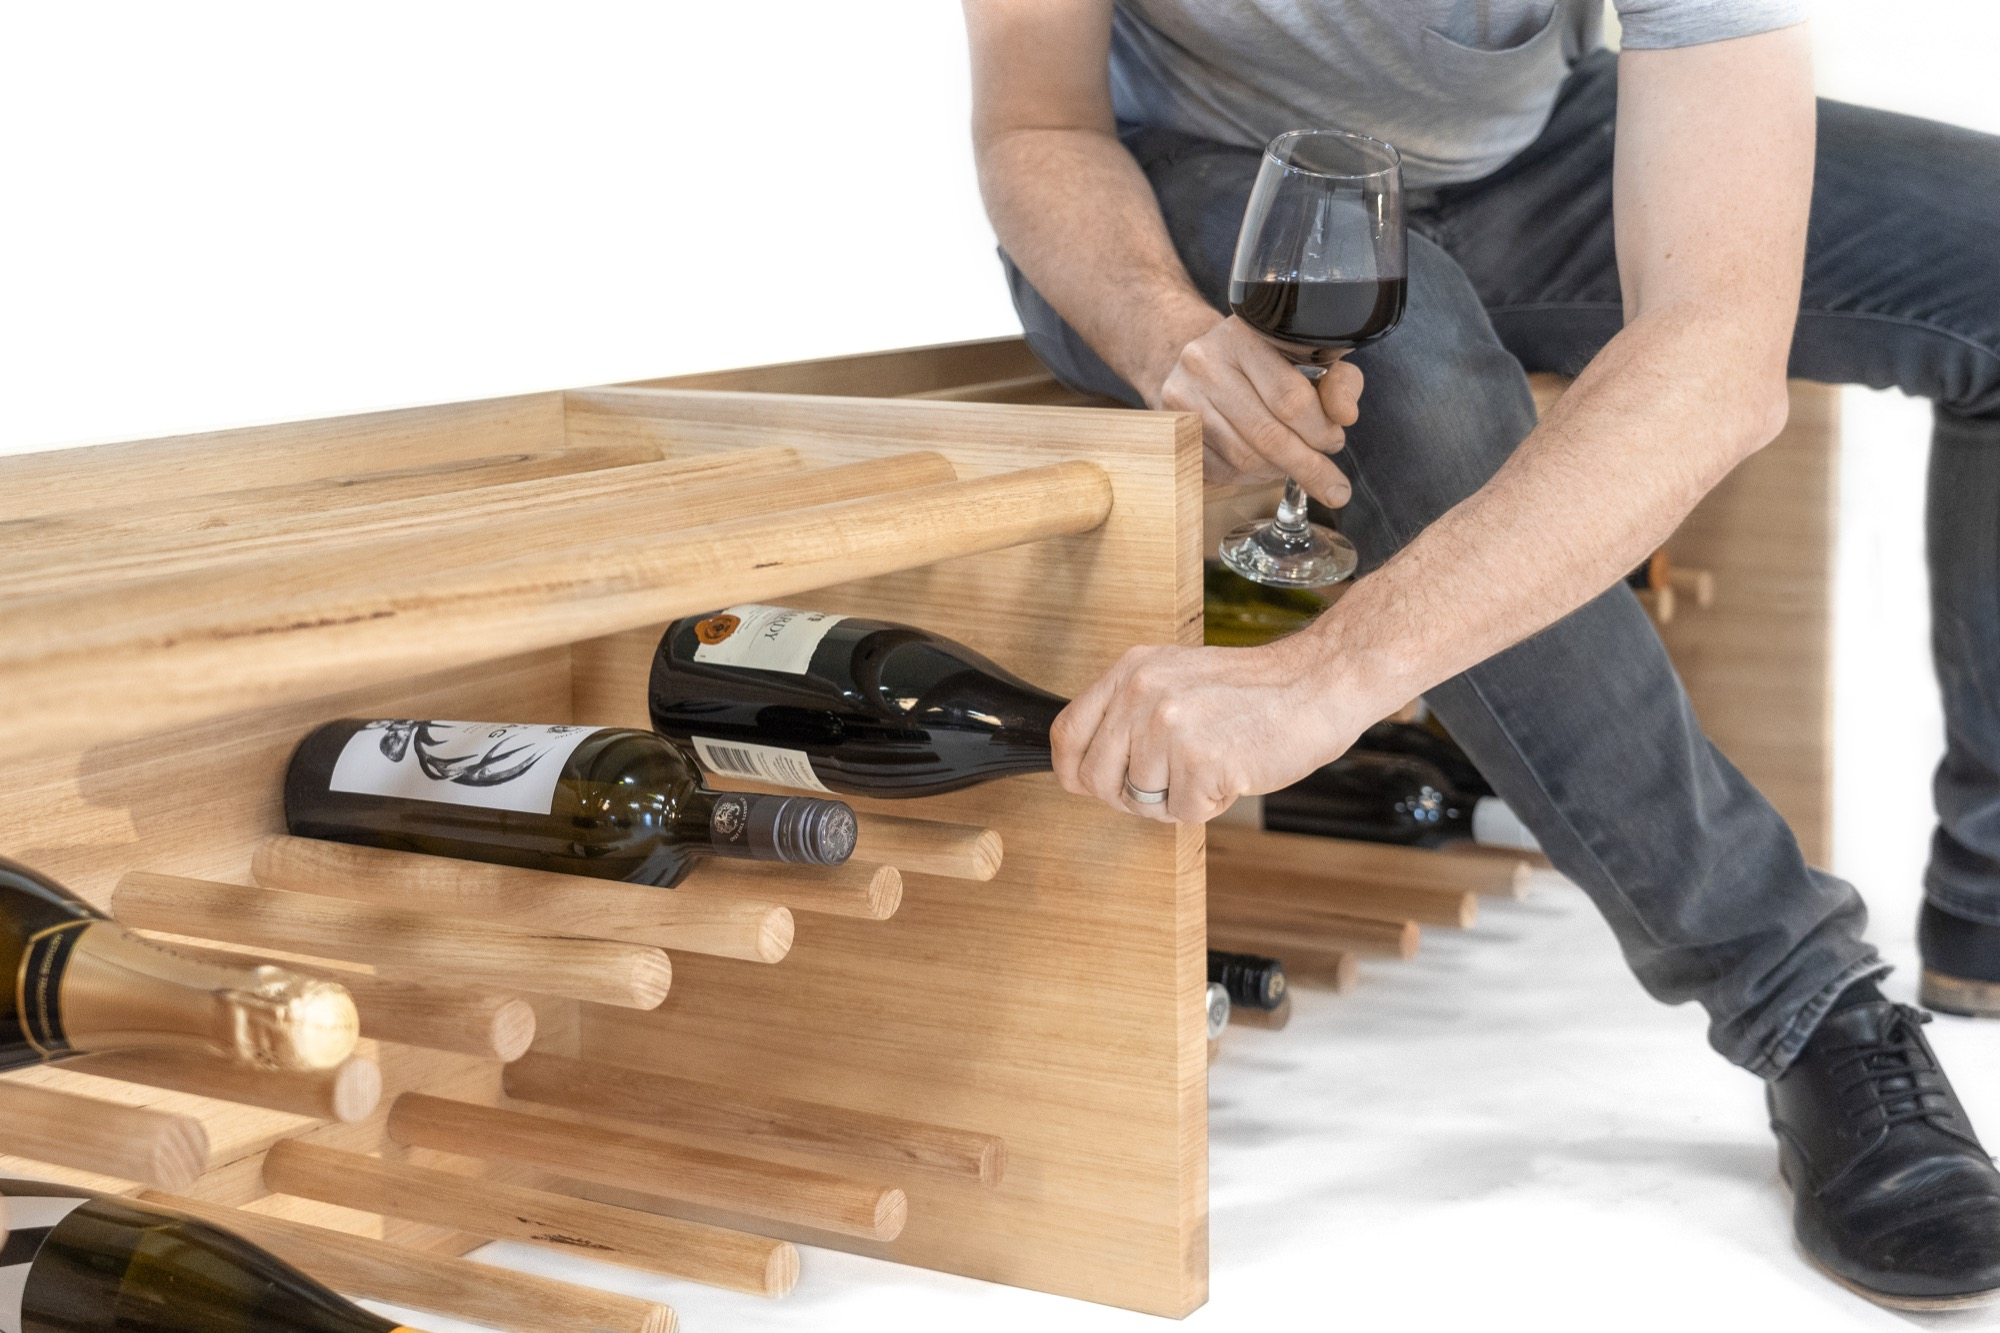 Vino Bench by Sawdust Bureau_low res_02.